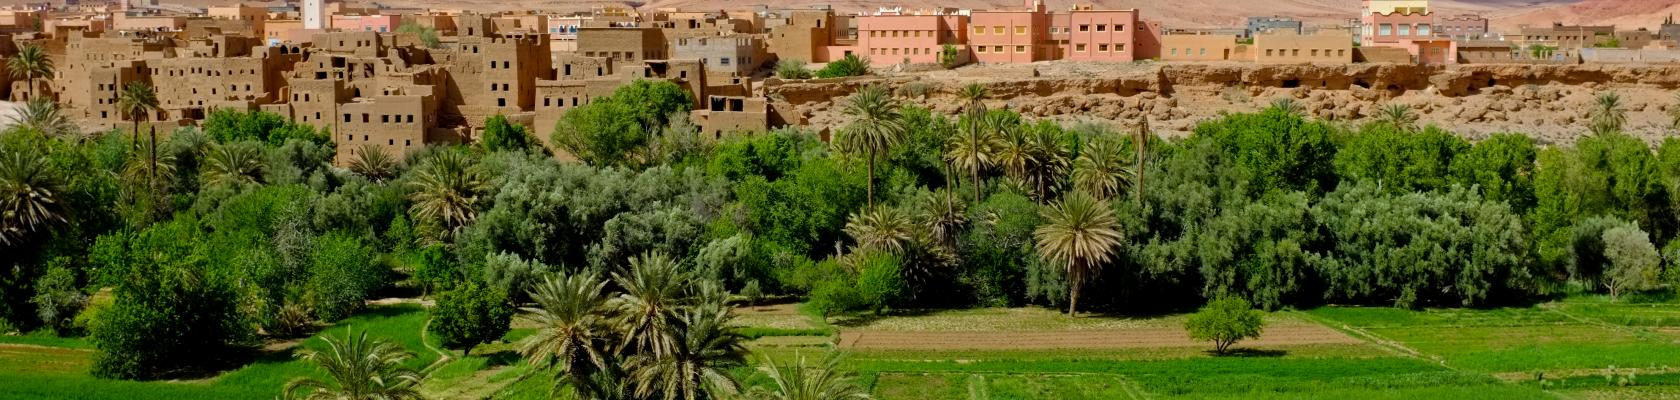 Maroc champ agriculture paysage